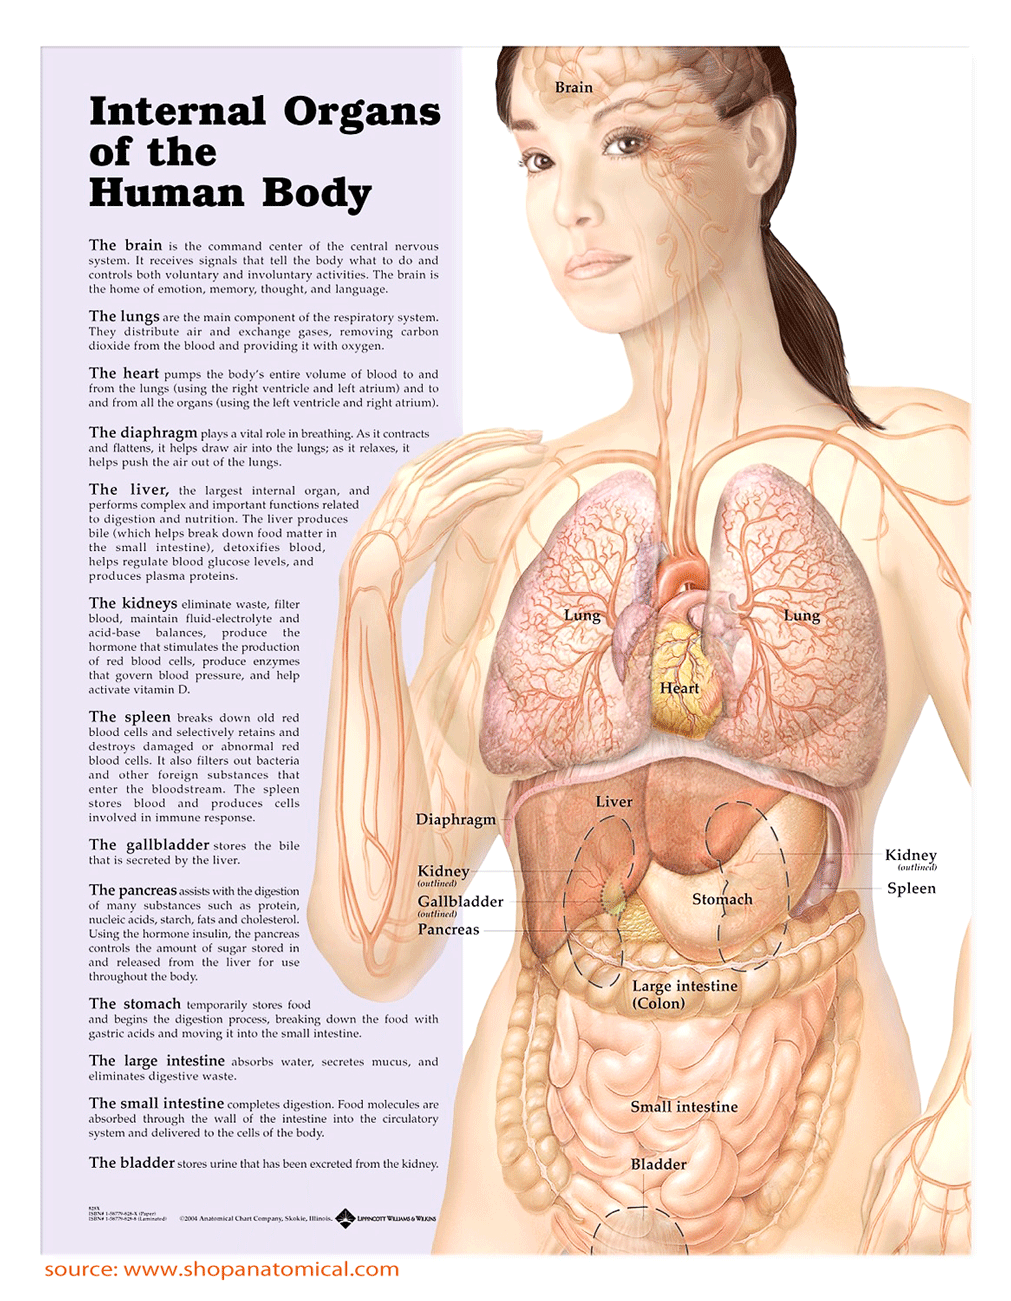 Emotions and Internal Organs